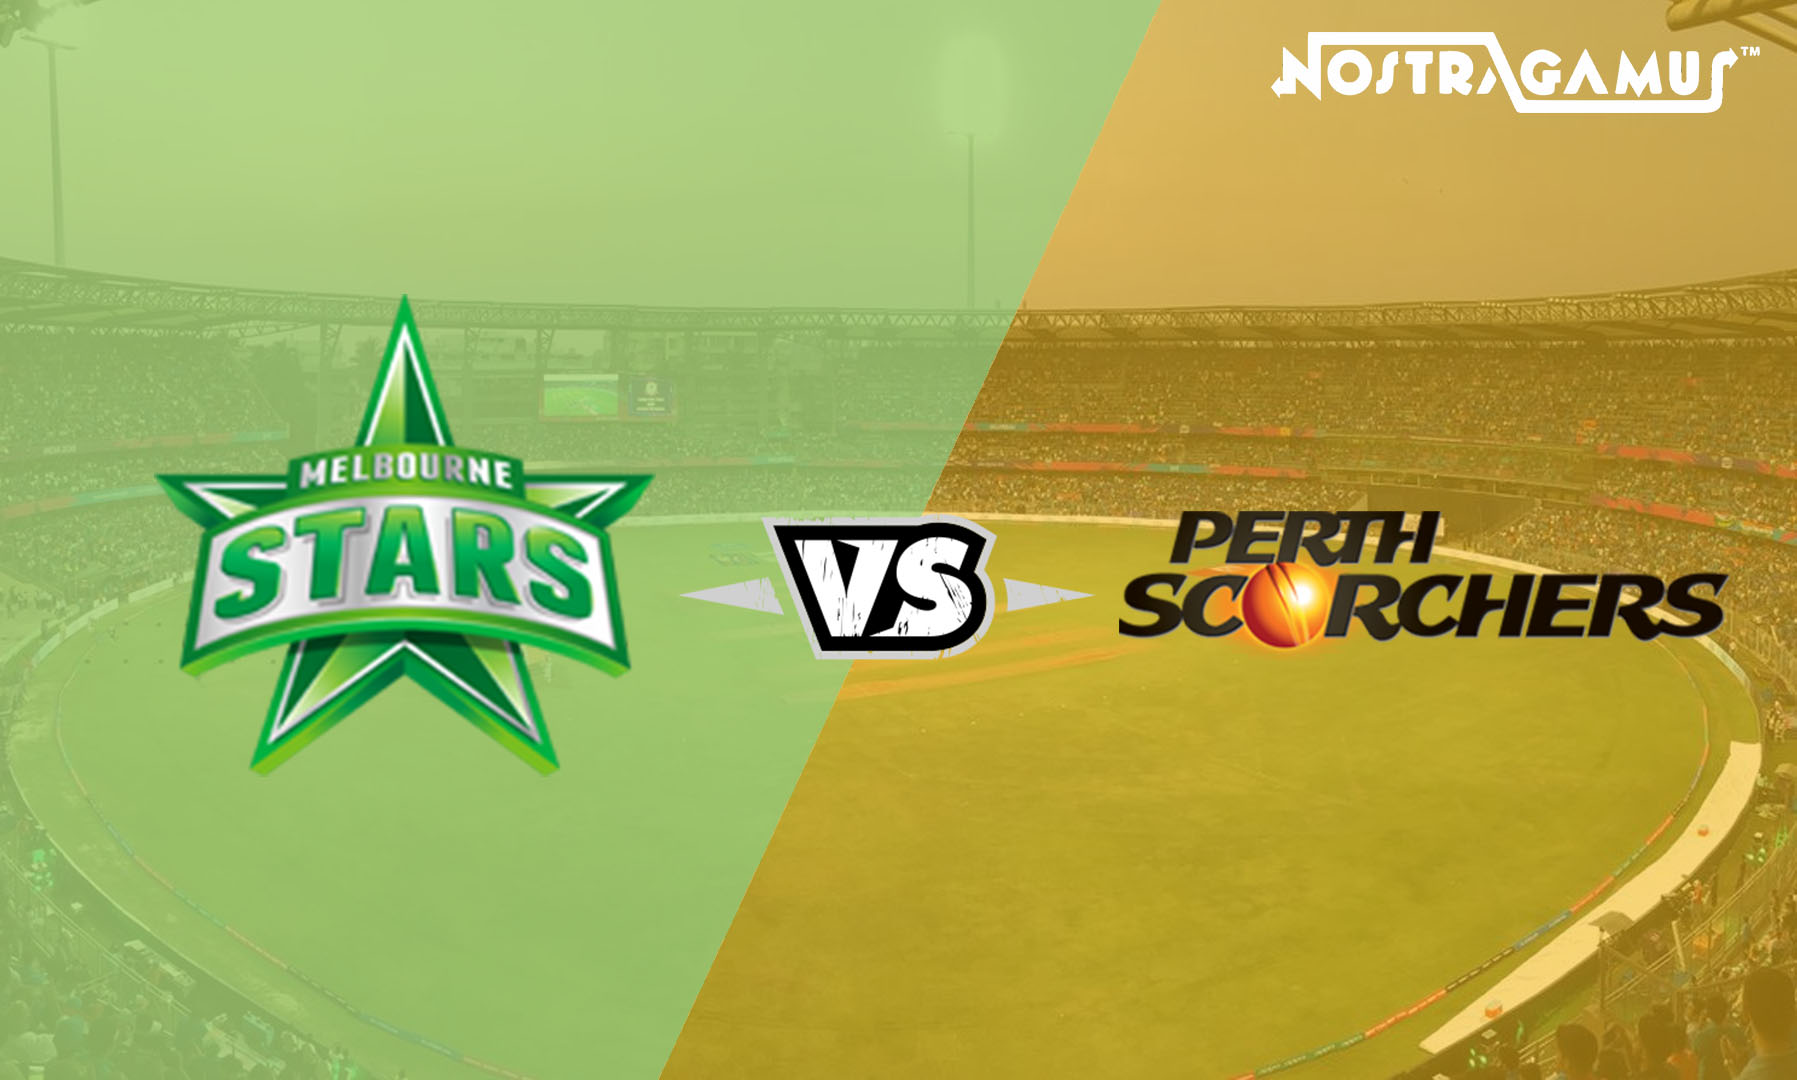 Big Bash League Predictions: Melbourne Stars vs Perth Scorchers